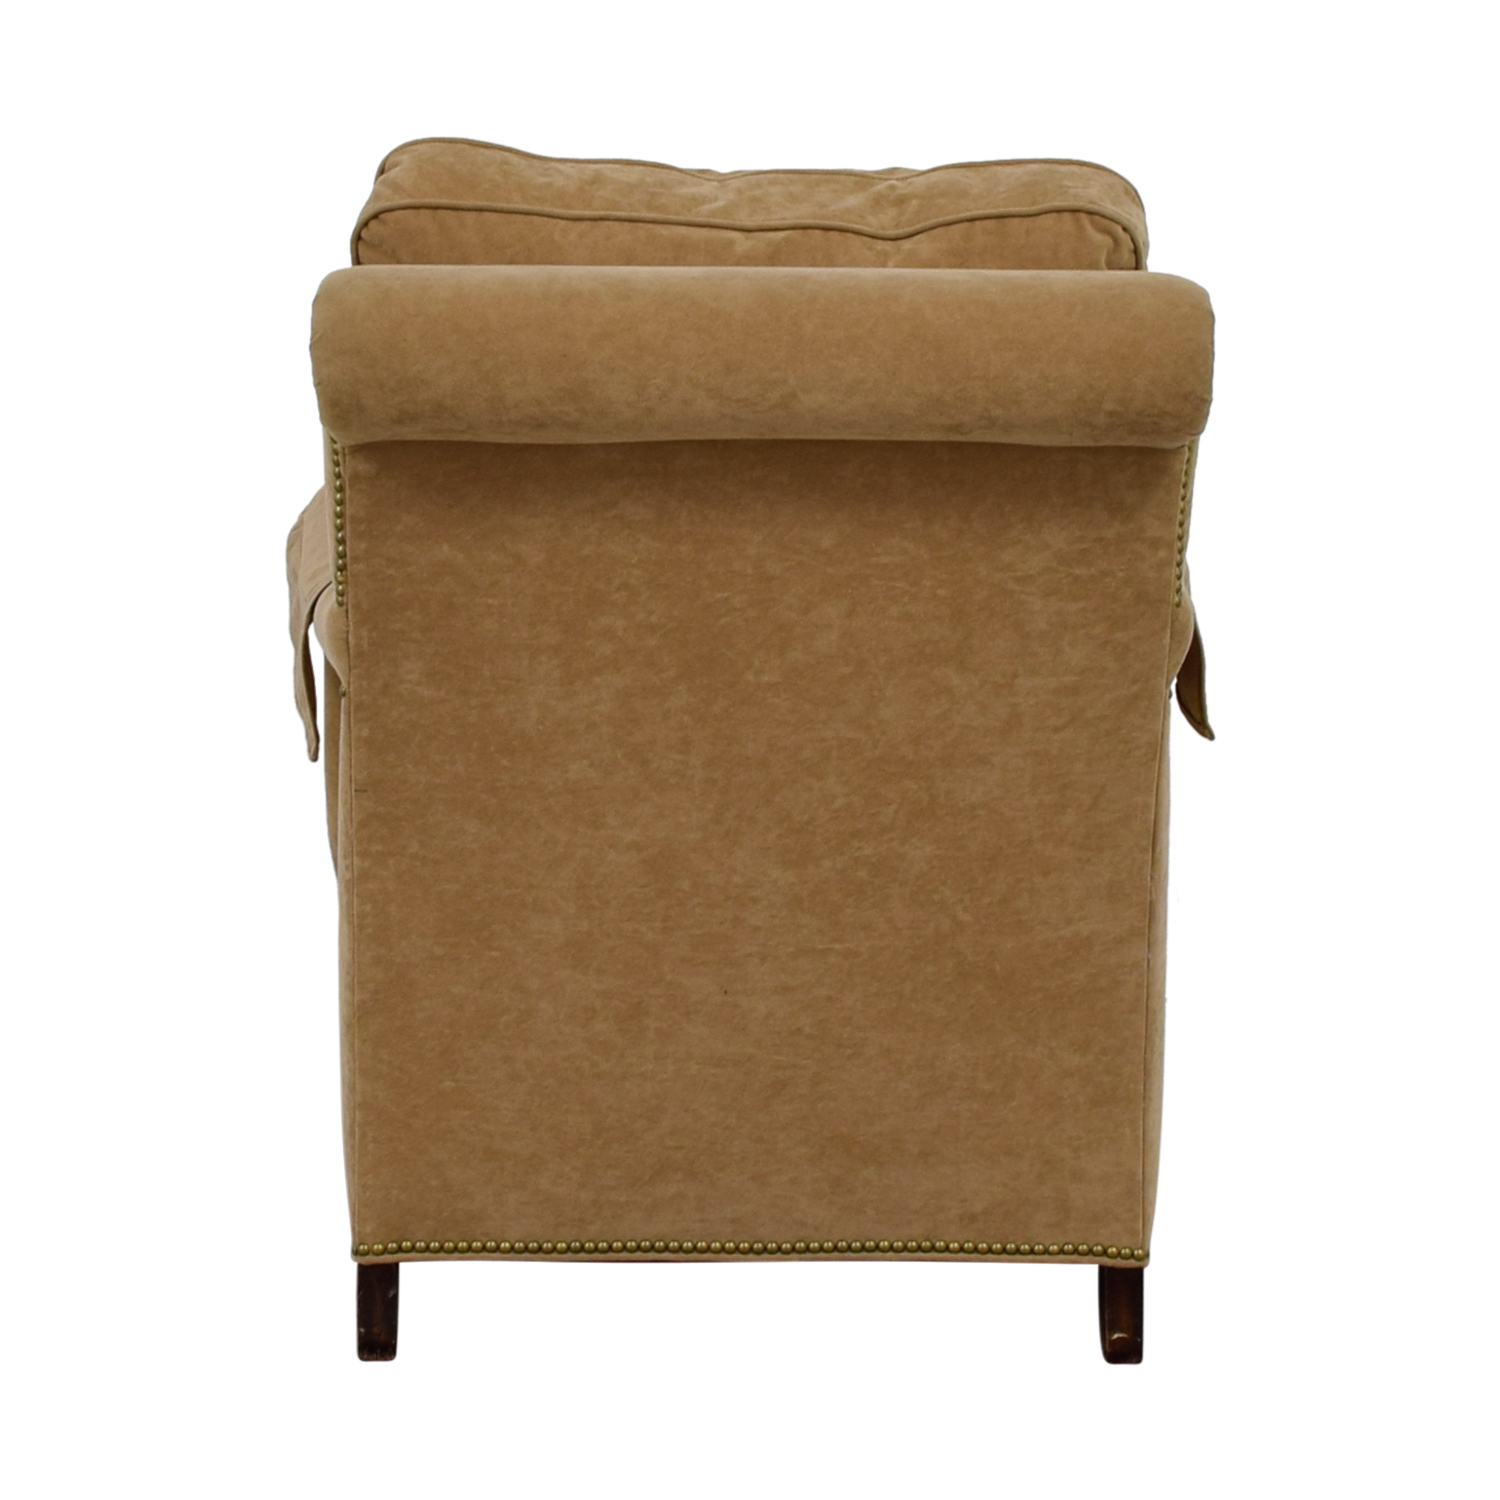 buy Beige Overstuffed Accent Chair